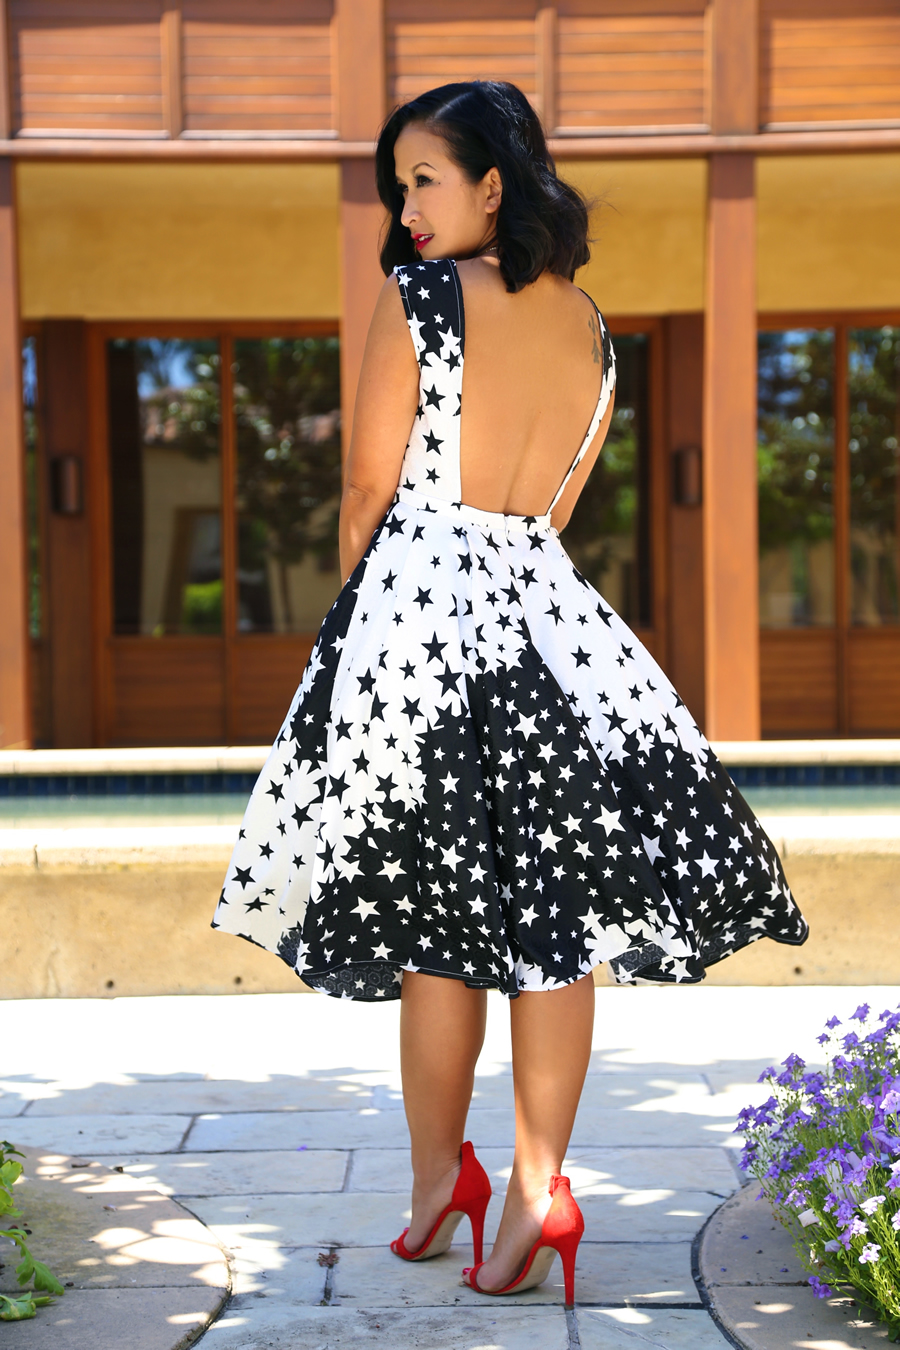 starsdress4